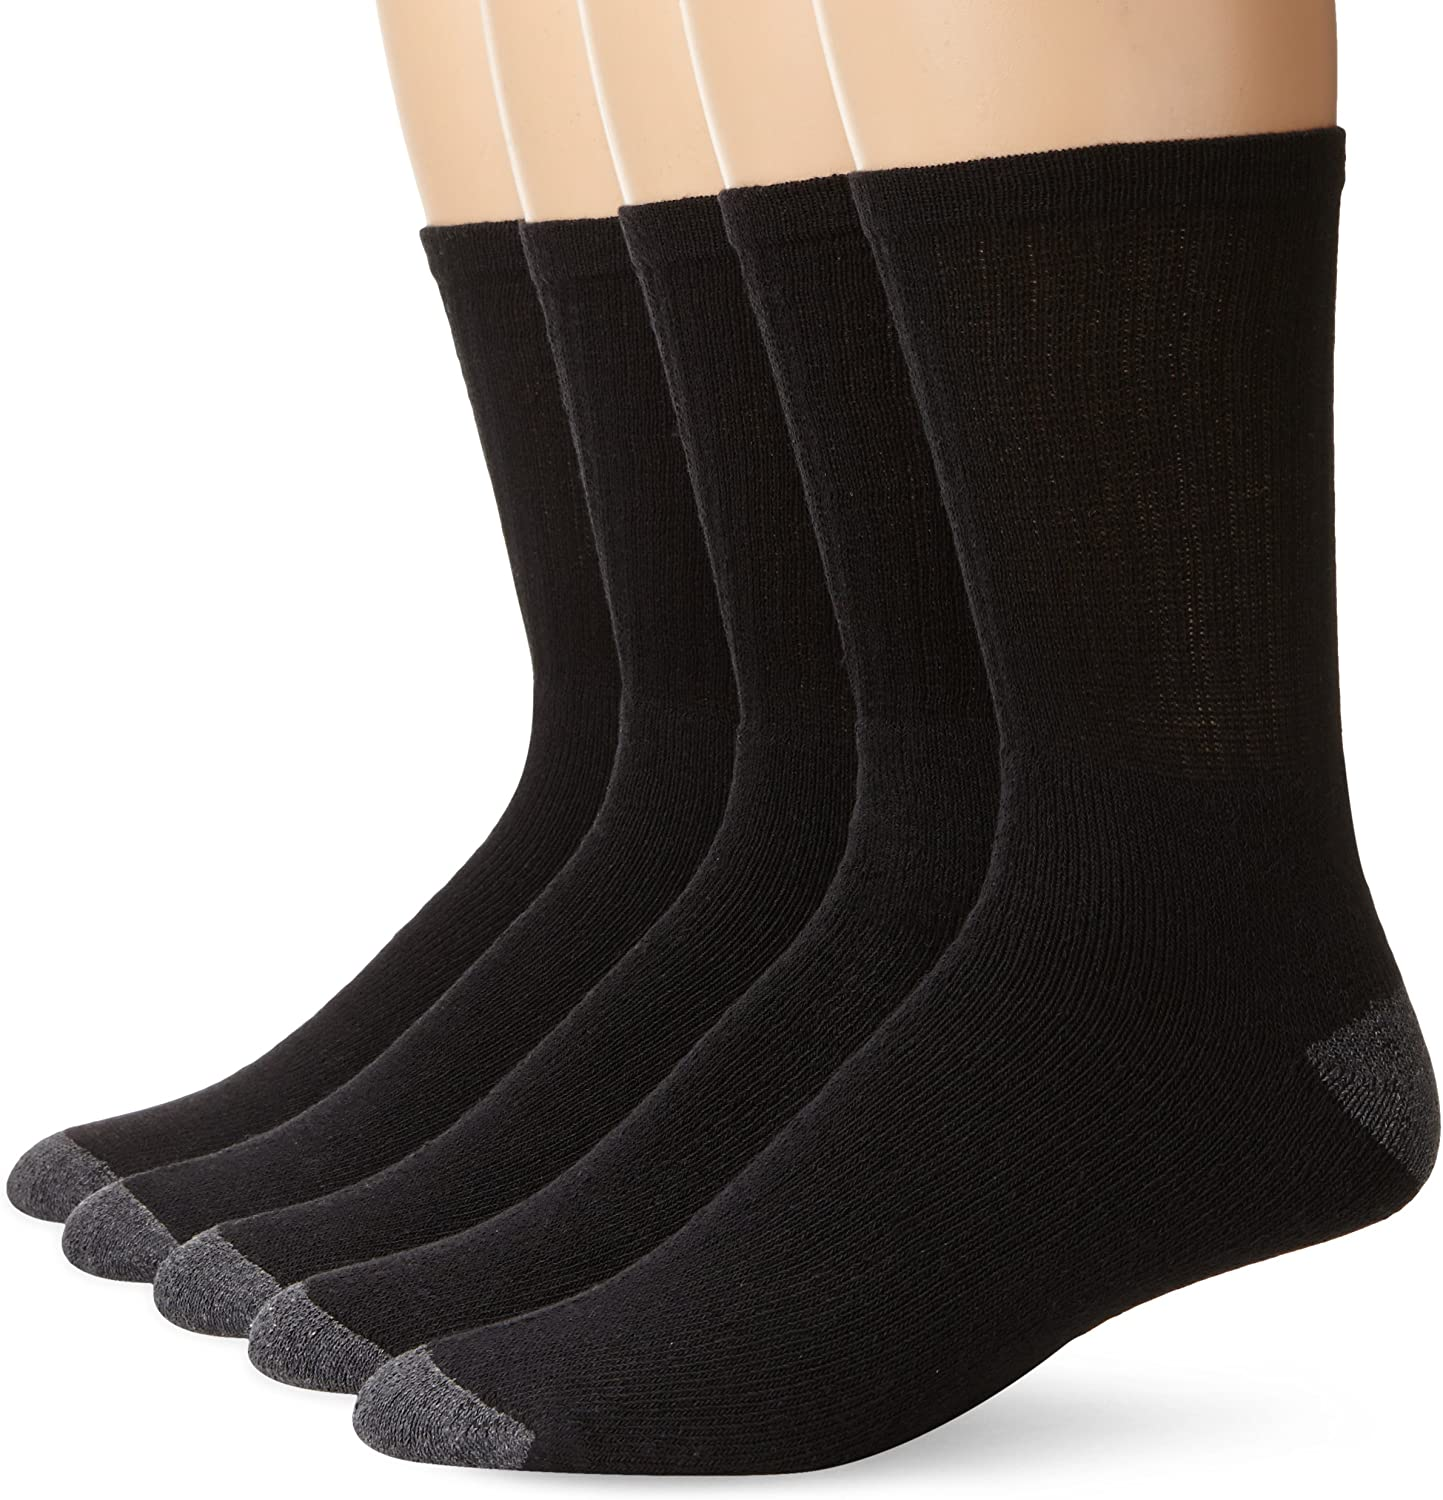 Stanley Black and Decker Men's 5 Pack Mid Weight Crew Work Socks